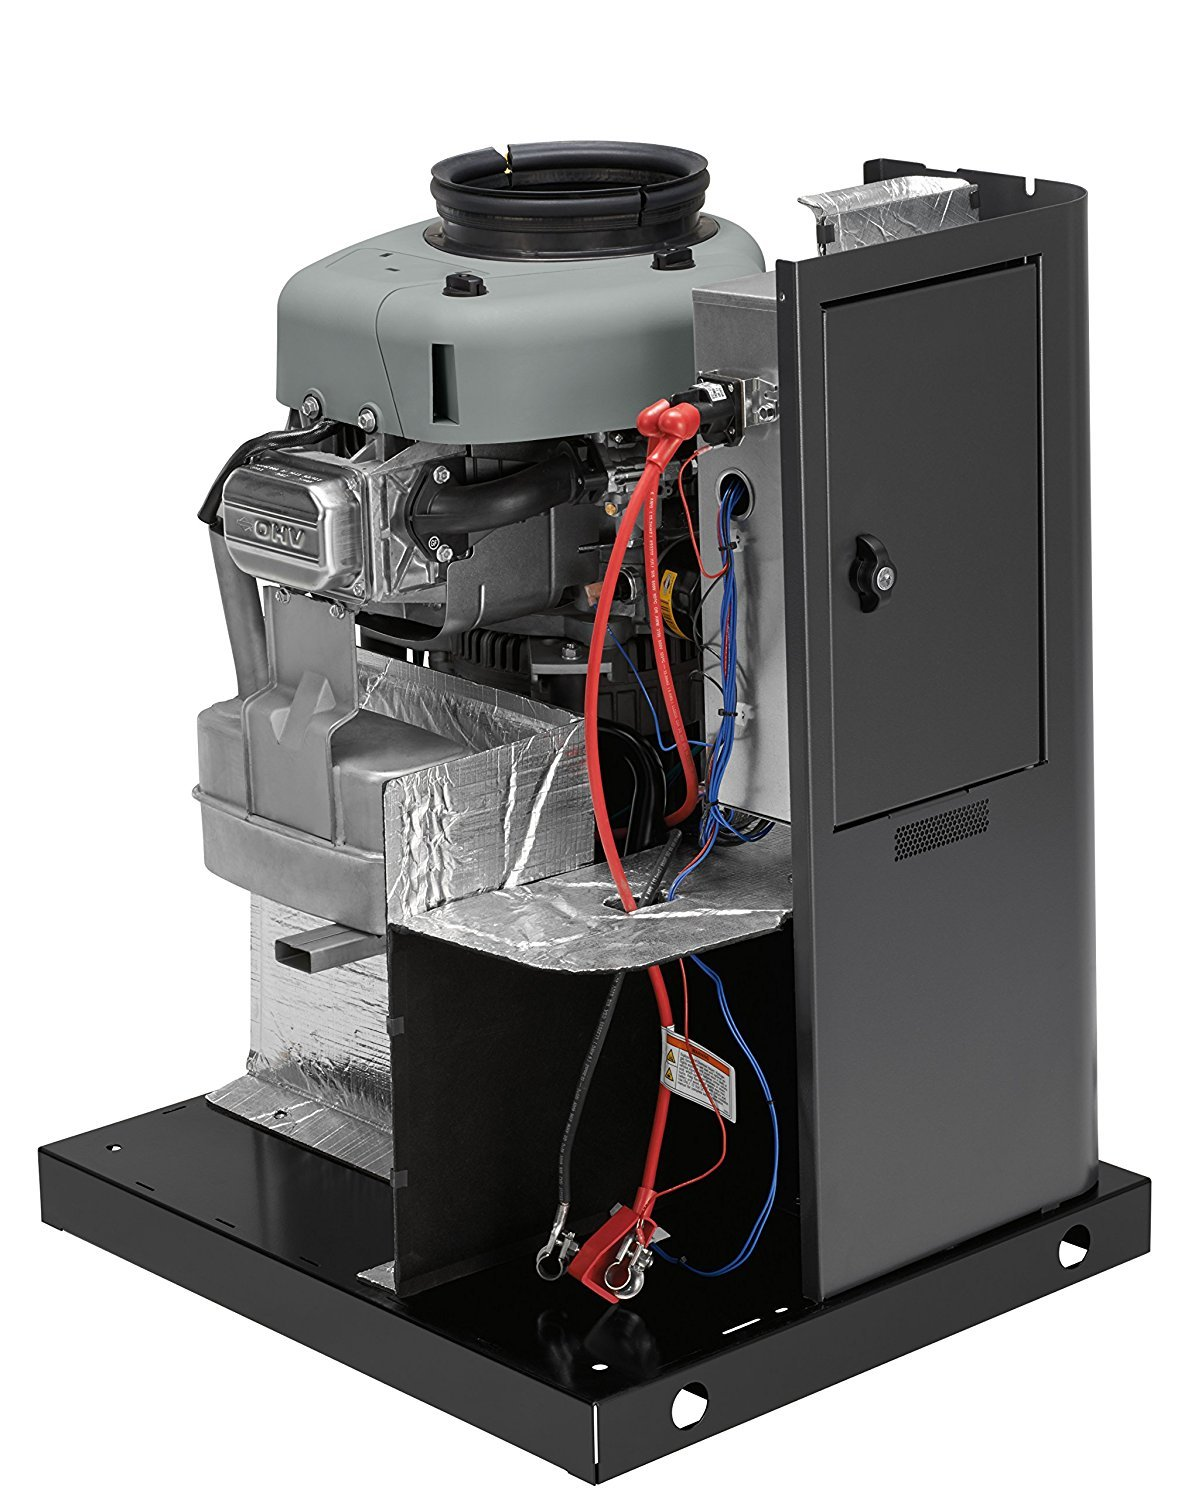 Briggs Stratton 40532 12kw Standby Generator With 100 And Transfer Switch Installed In A Home Electrical Amp 16 Circuit Garden Outdoor